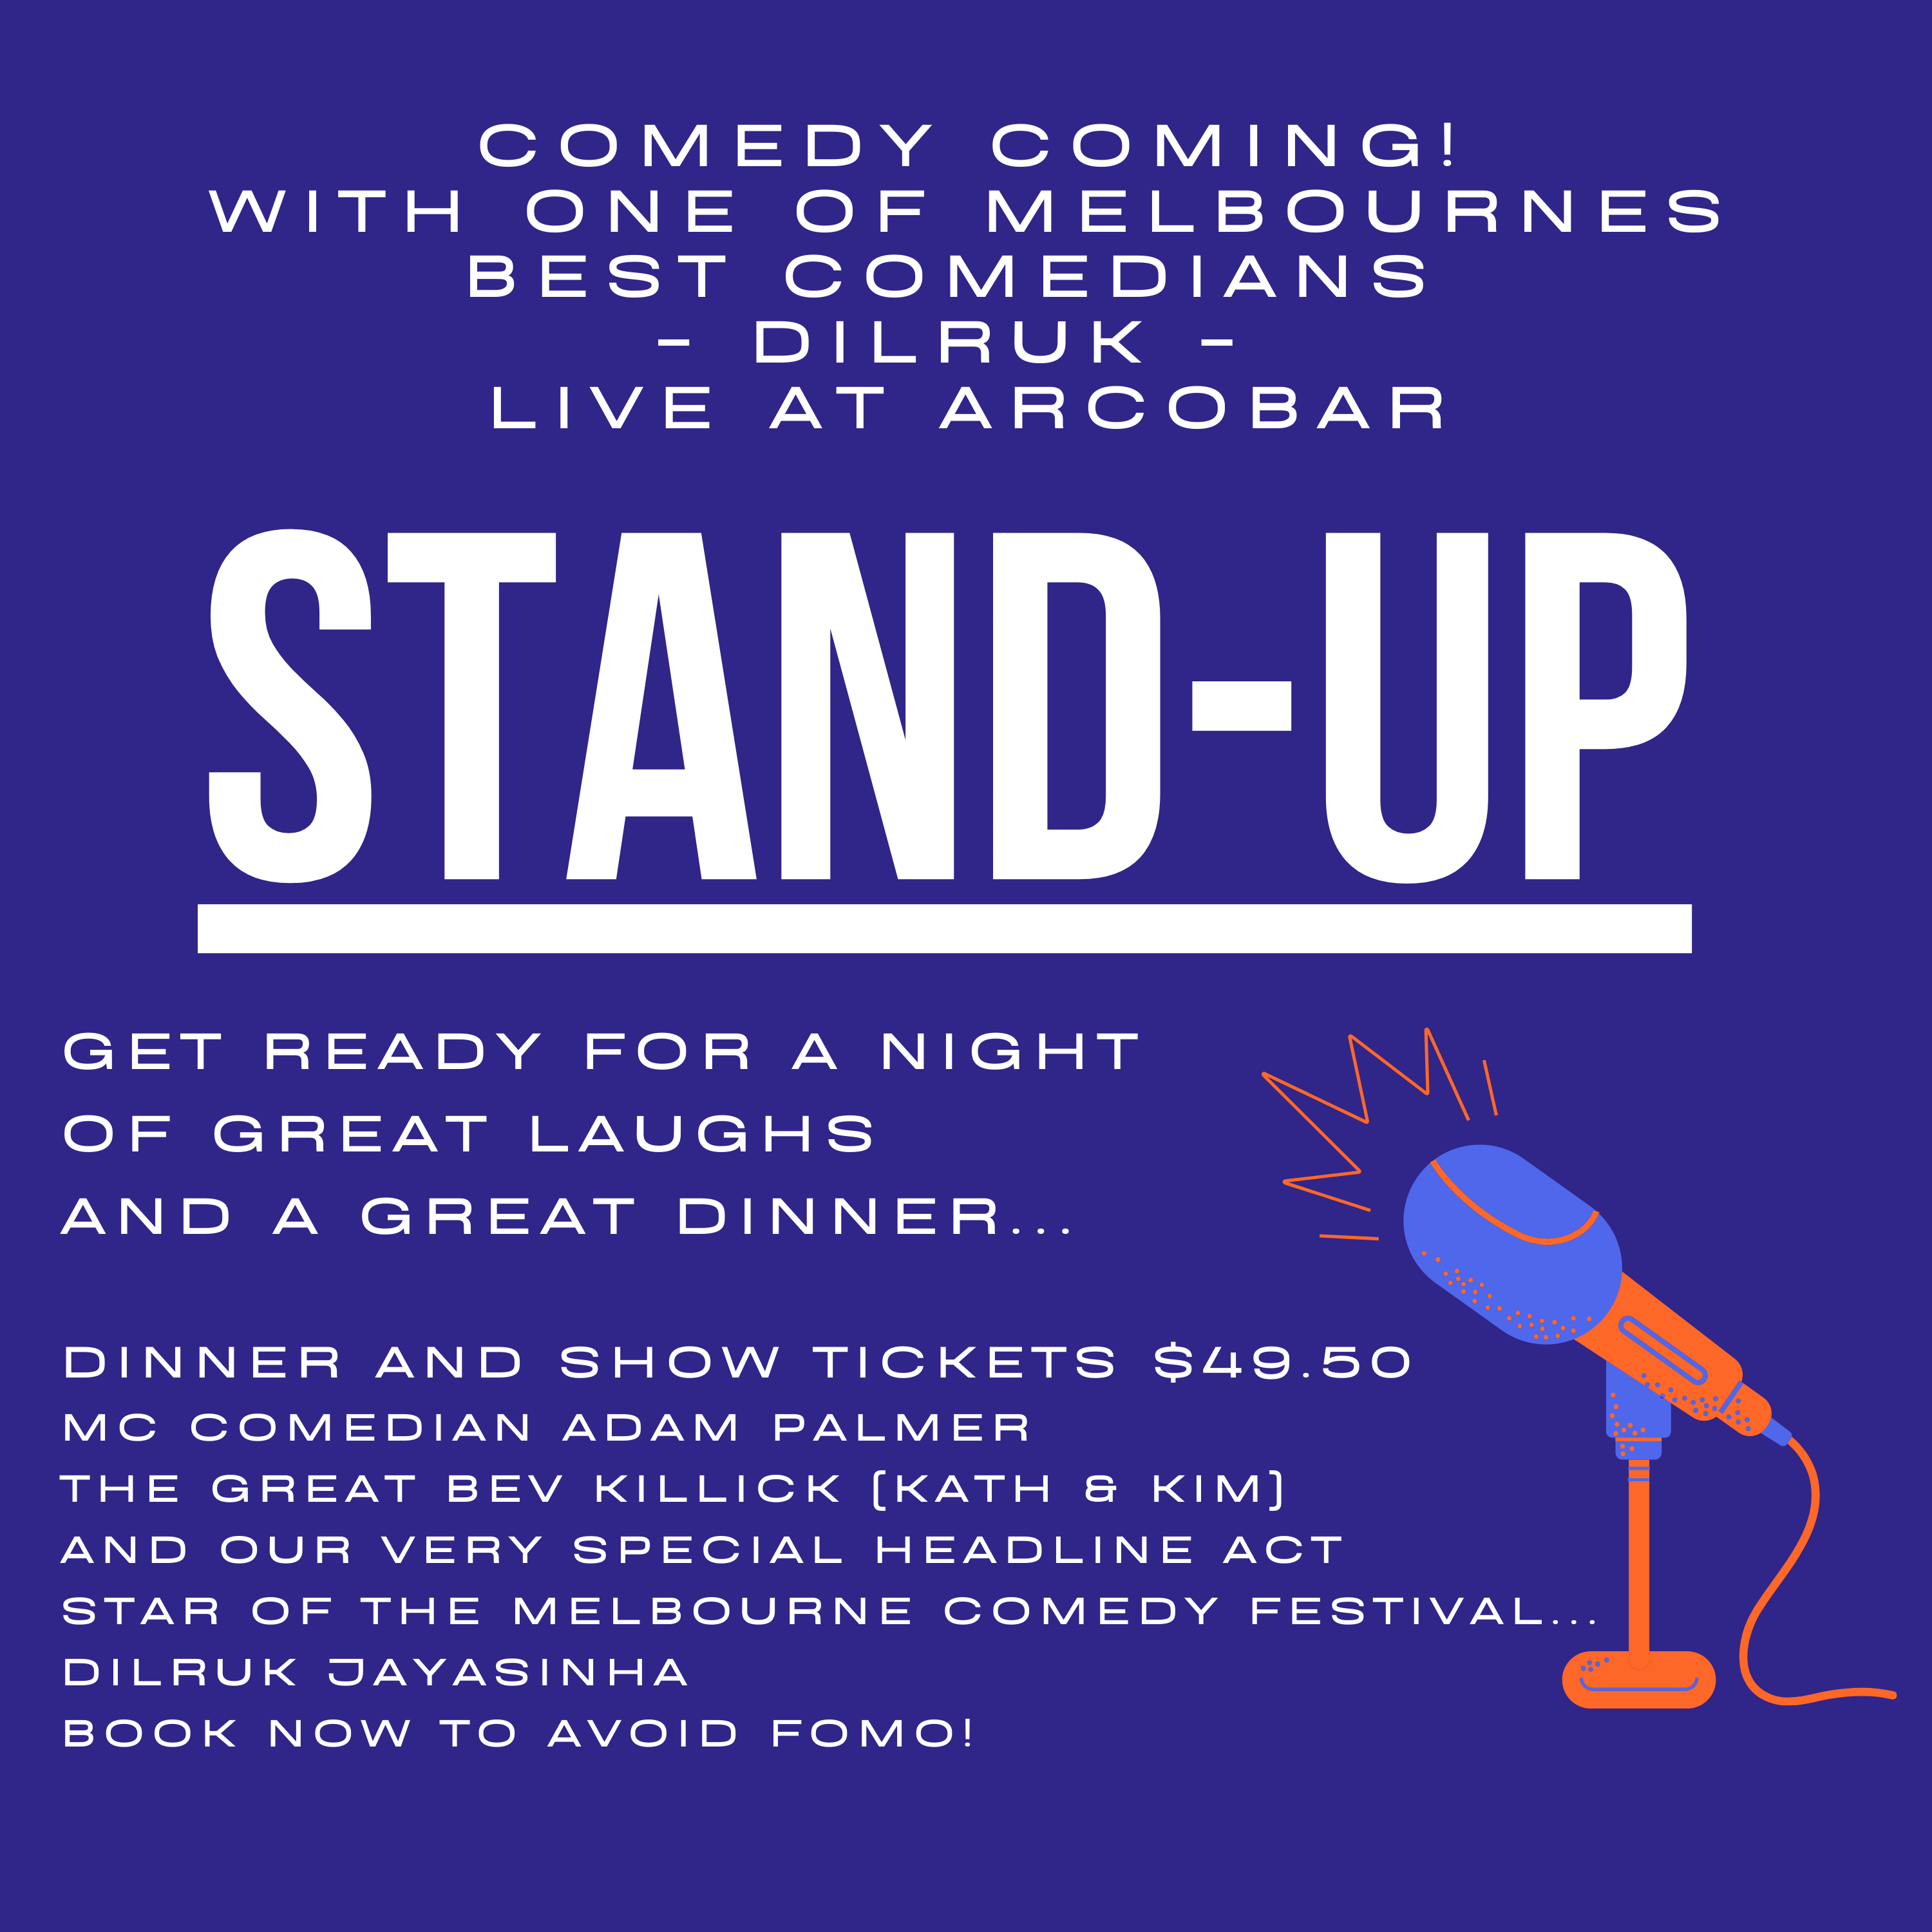 Comedy-Coming-Poster.png#asset:1622